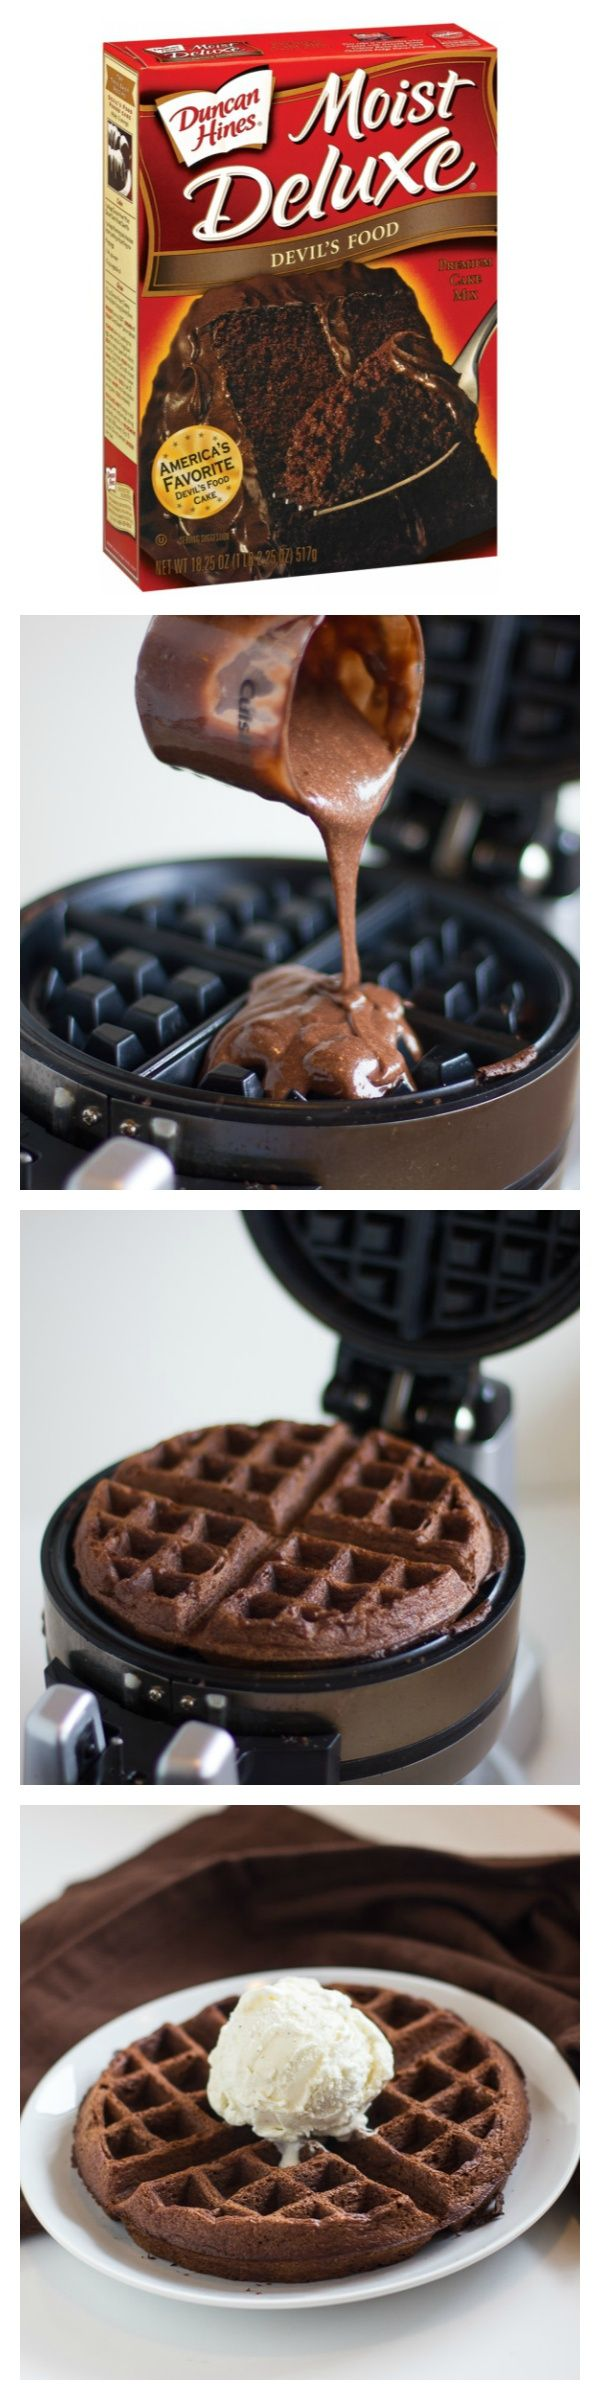 Cake Mix Waffles - make the cake batter as instructed on the box then make them just like you do waffles. Top with your favorite ice cream!